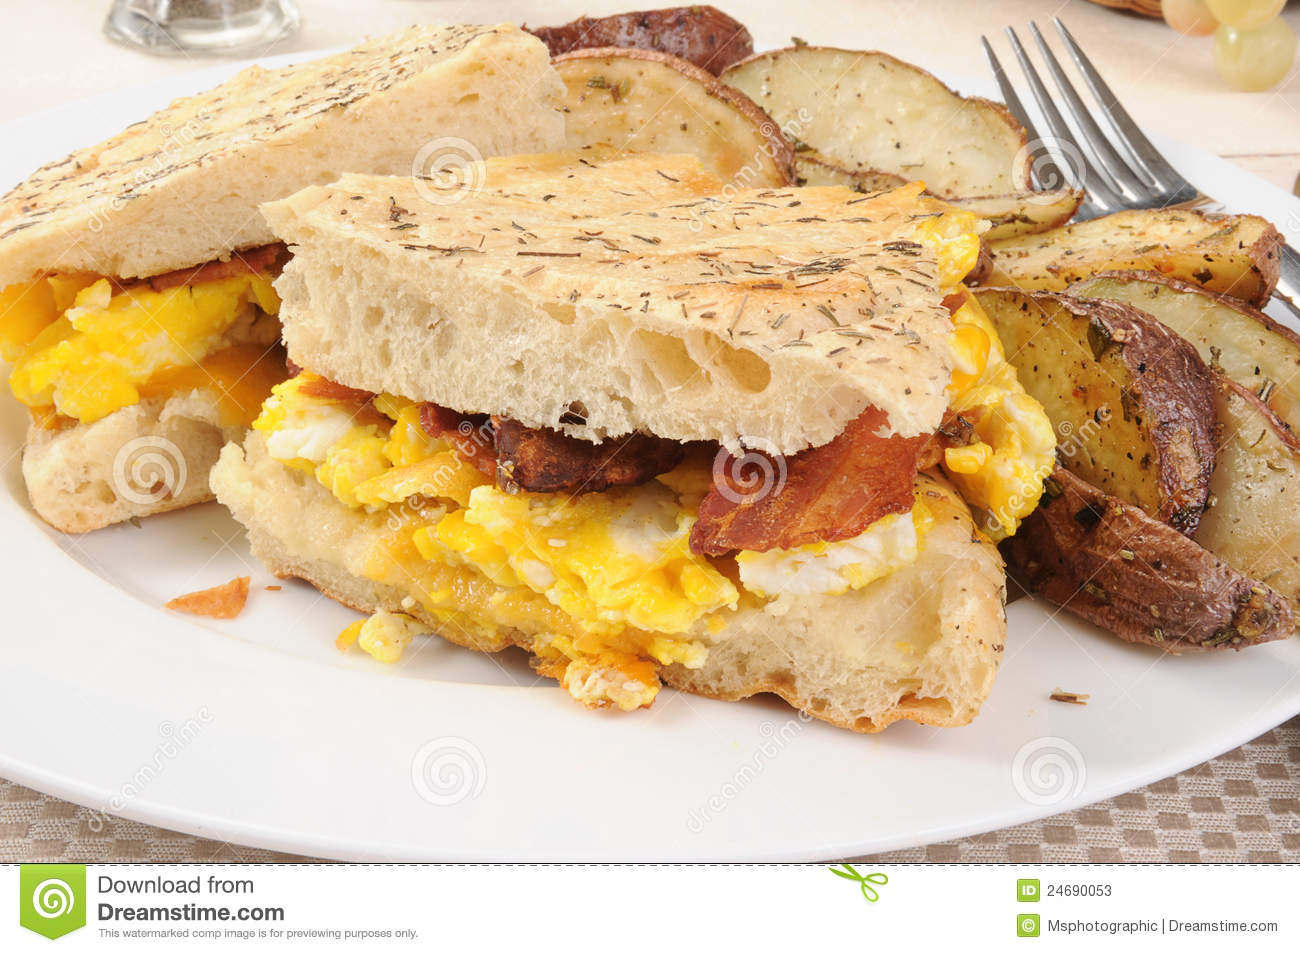 breakfast panini of bacon, eggs, cheddar cheese on a focaccia bread.